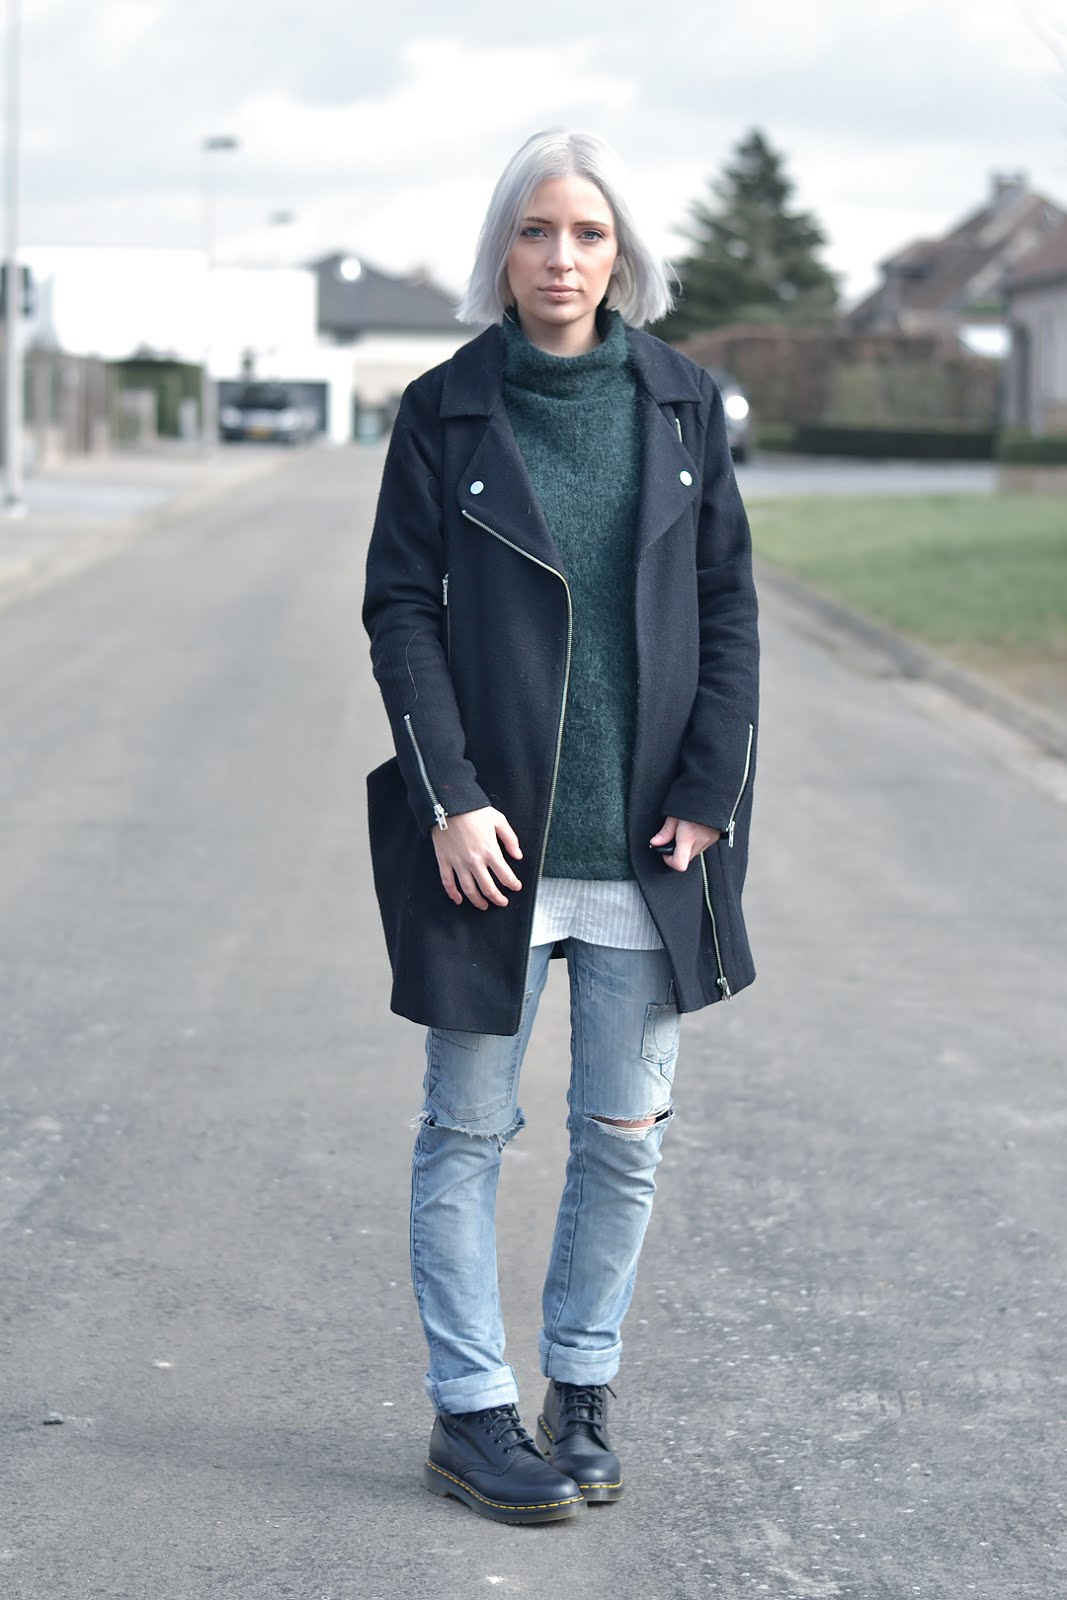 h&m trend jumper, dark green, black biker coat, asos, zara ripped jeans, dr martens boots, virginia, laid back, edgy, outfit, street style, belgian fashion blogger, belgische mode blogger